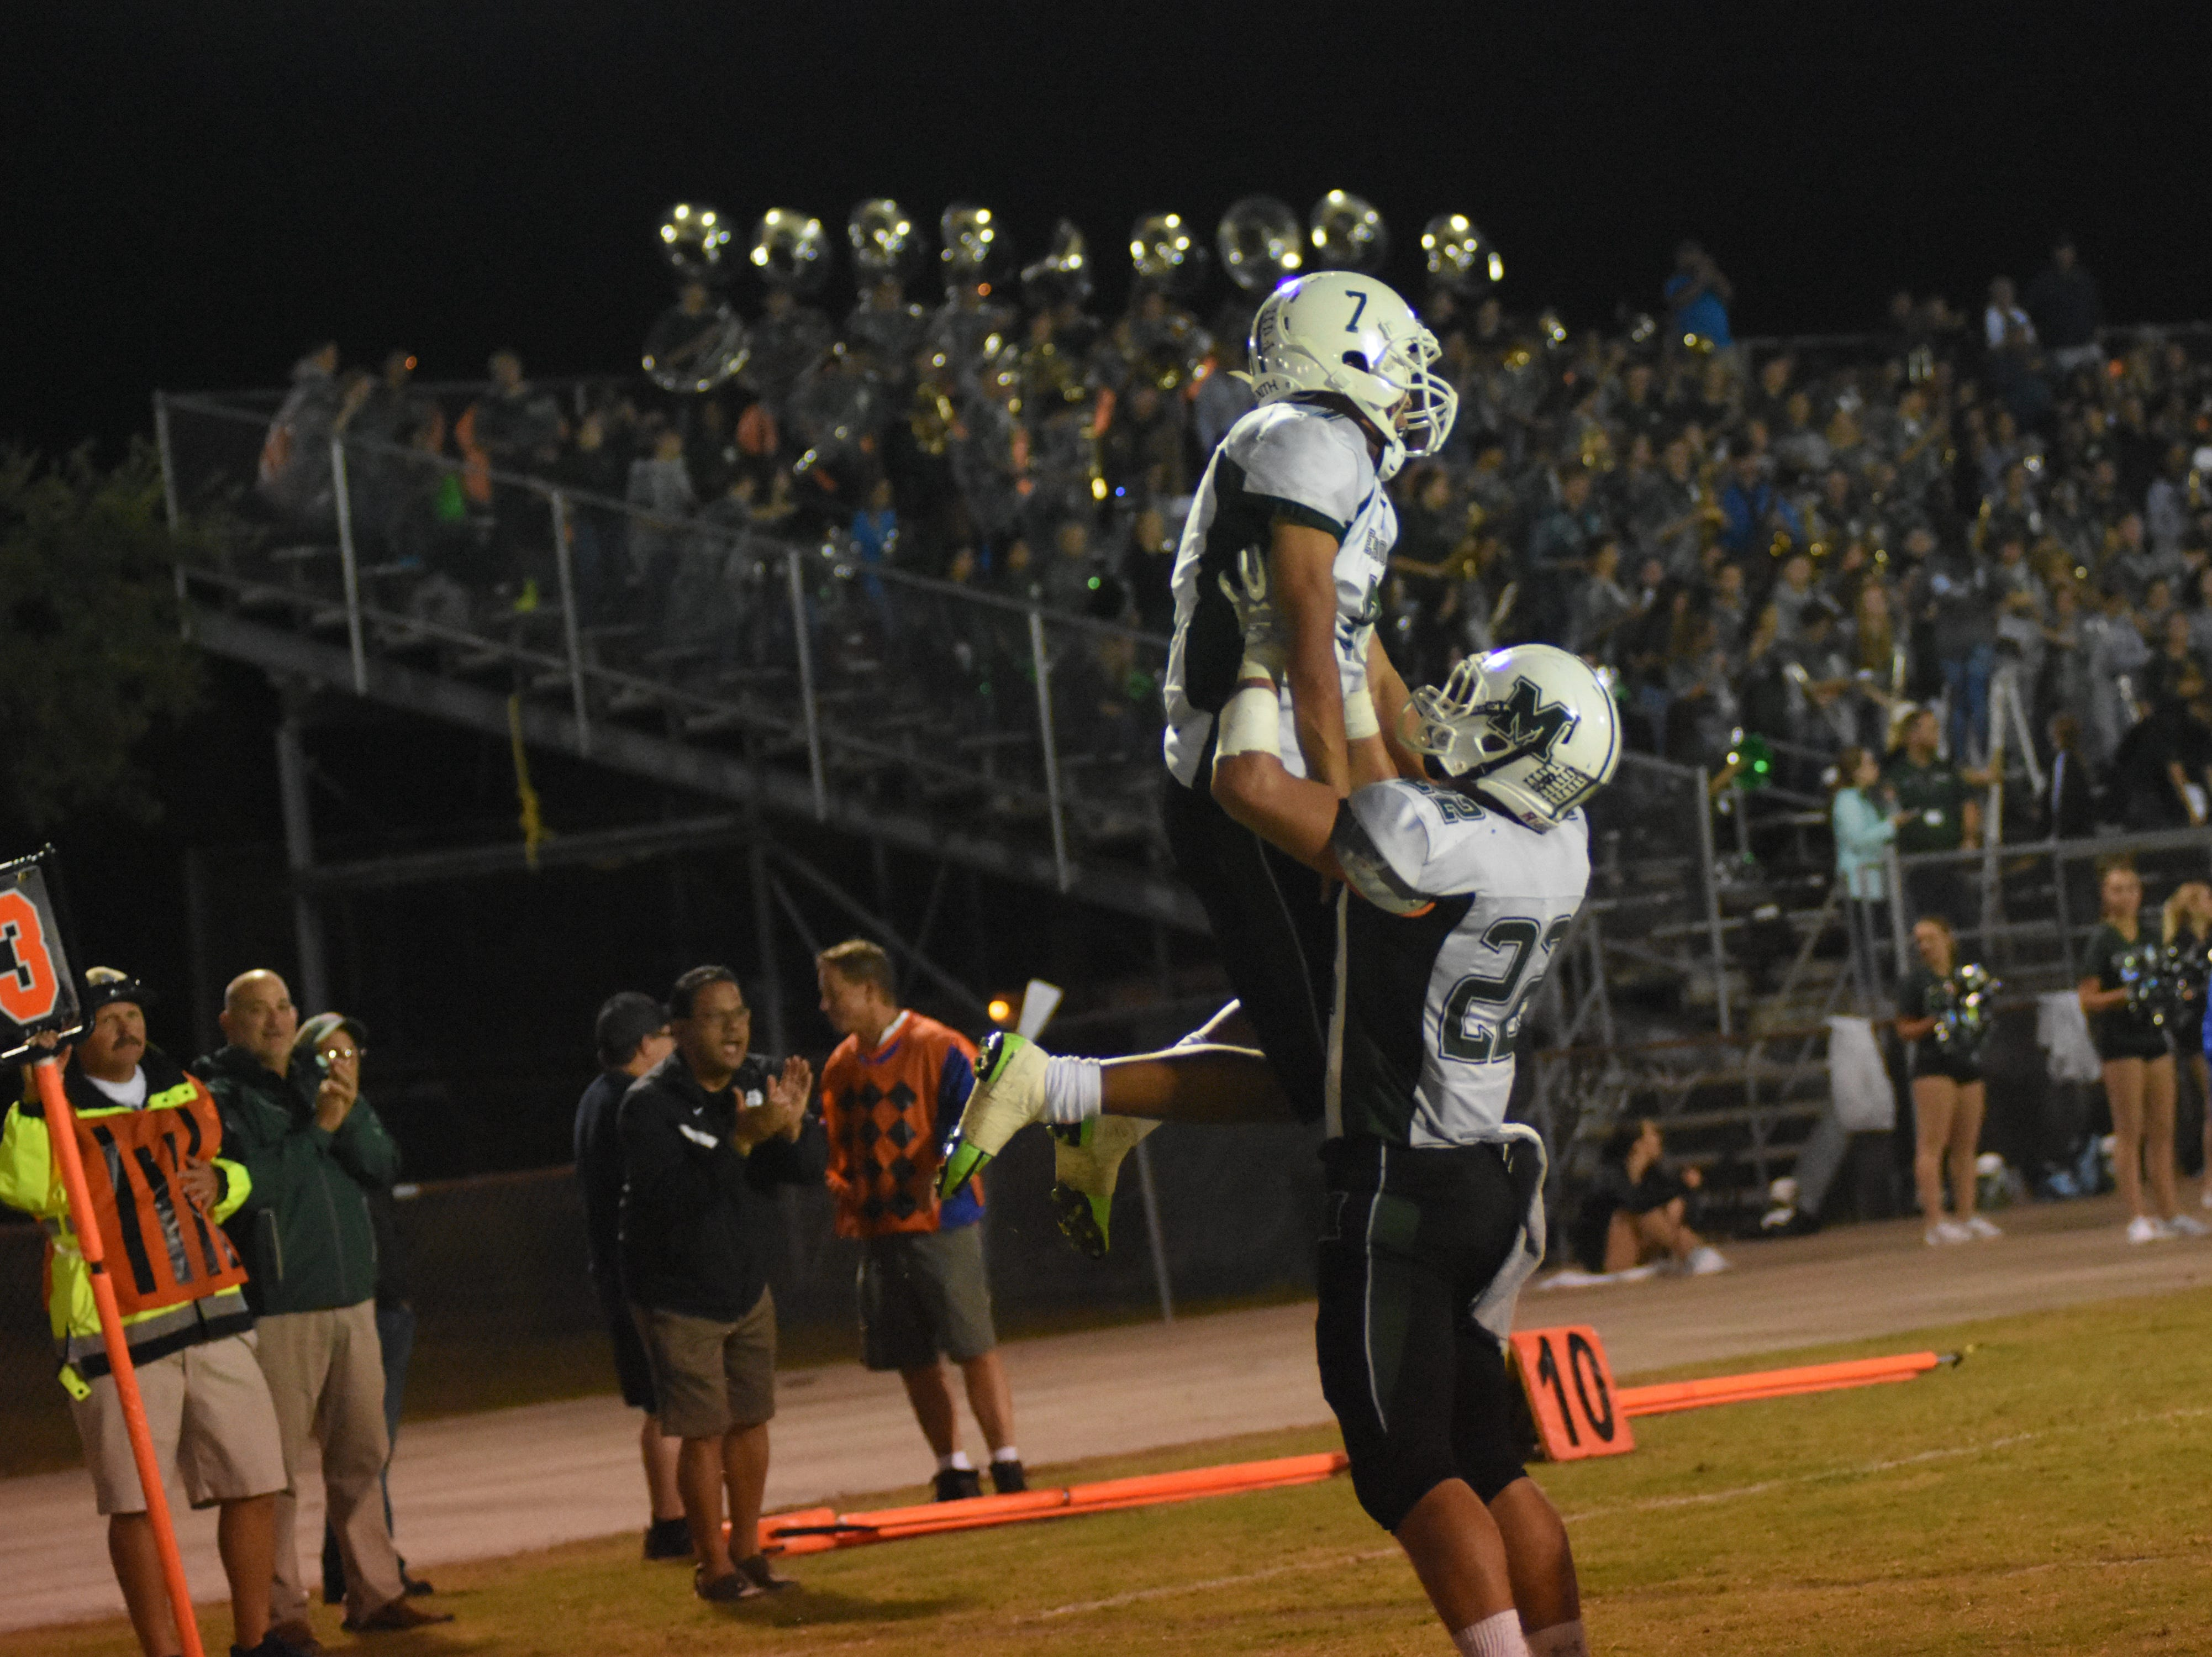 Melbourne High Bulldog Dalton Roseman (22) hoists Antionio Wright Jr. (7) into the air to celebrate Wright's touchdown.